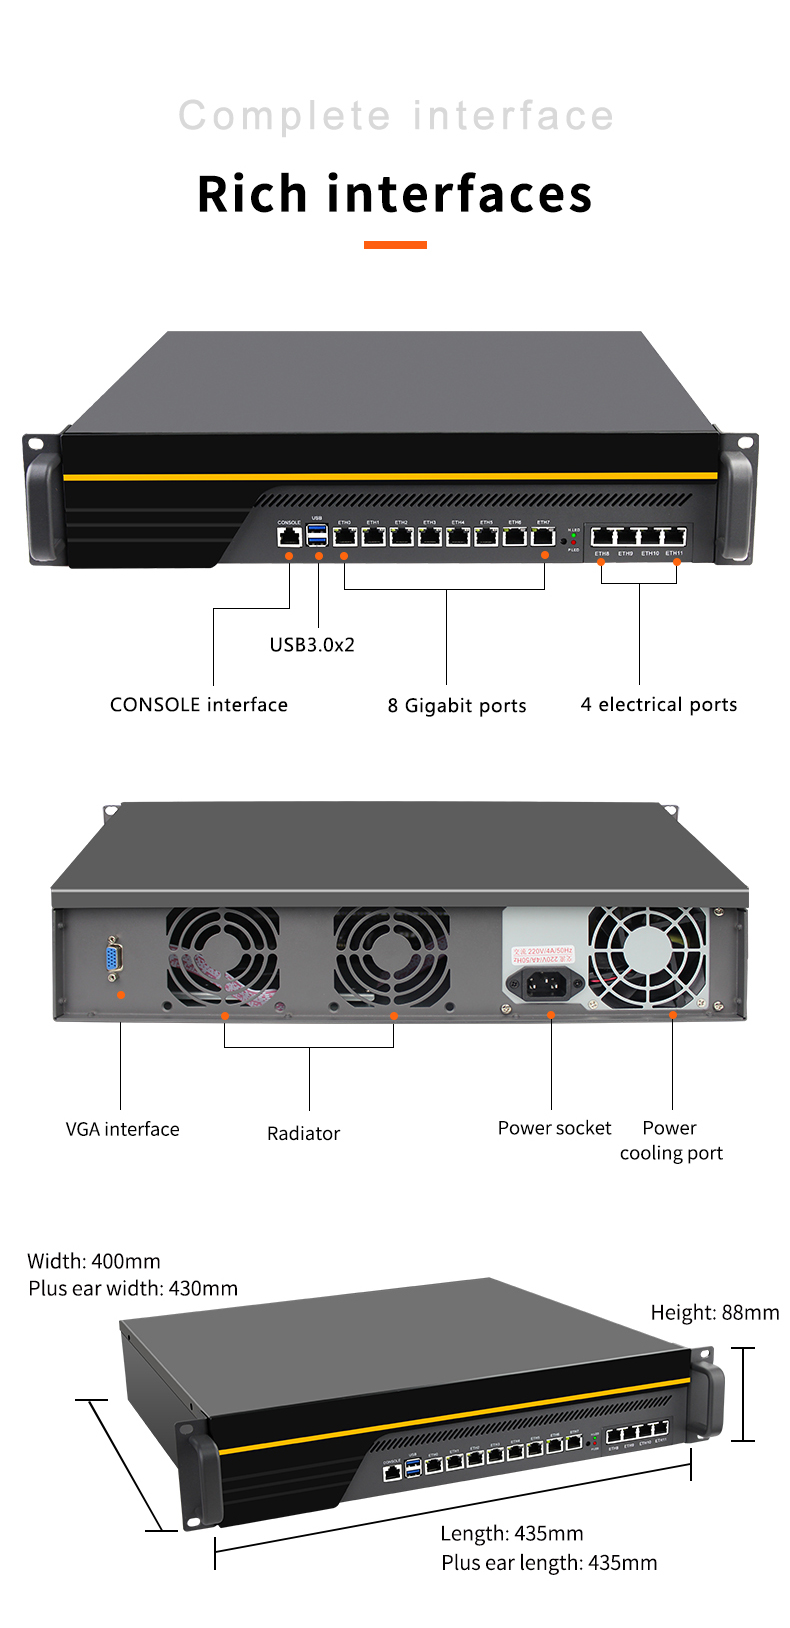 B150 soft routing industrial computer 8 network port i211 4 electrical port i350 gigabit network card 2U chassis